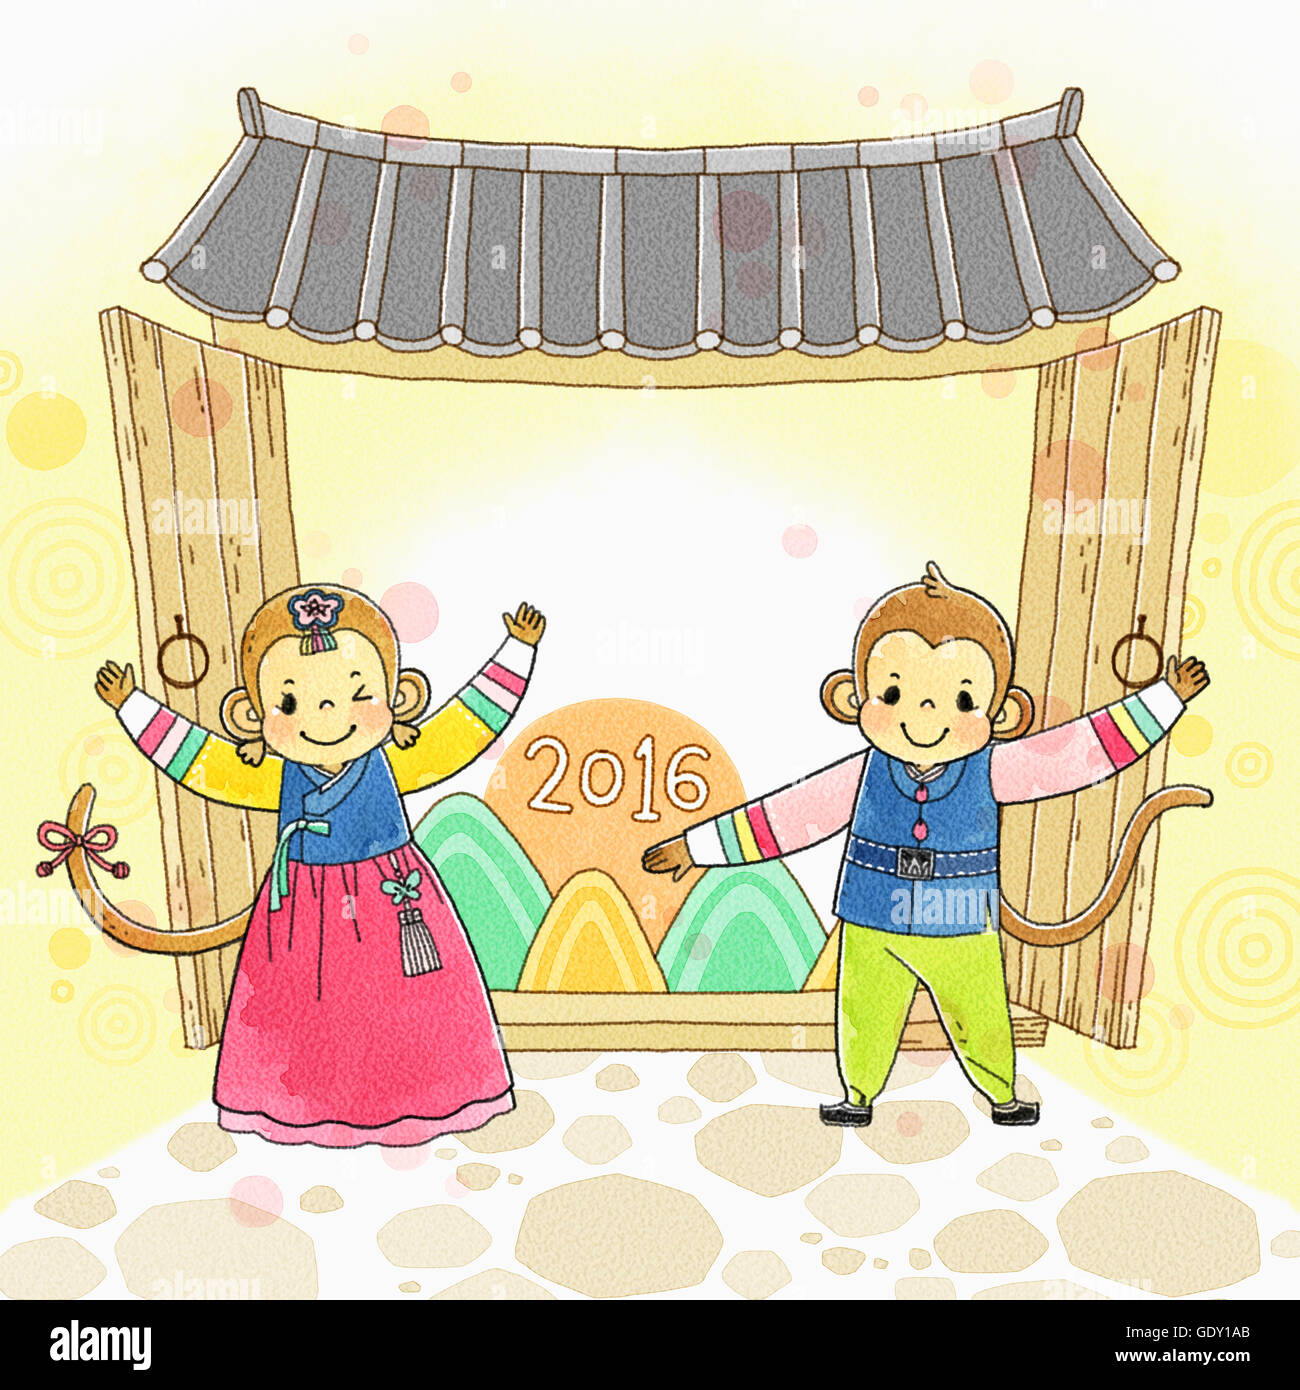 background of new year 201i6 with monkeys in traditional korean clothes smiling